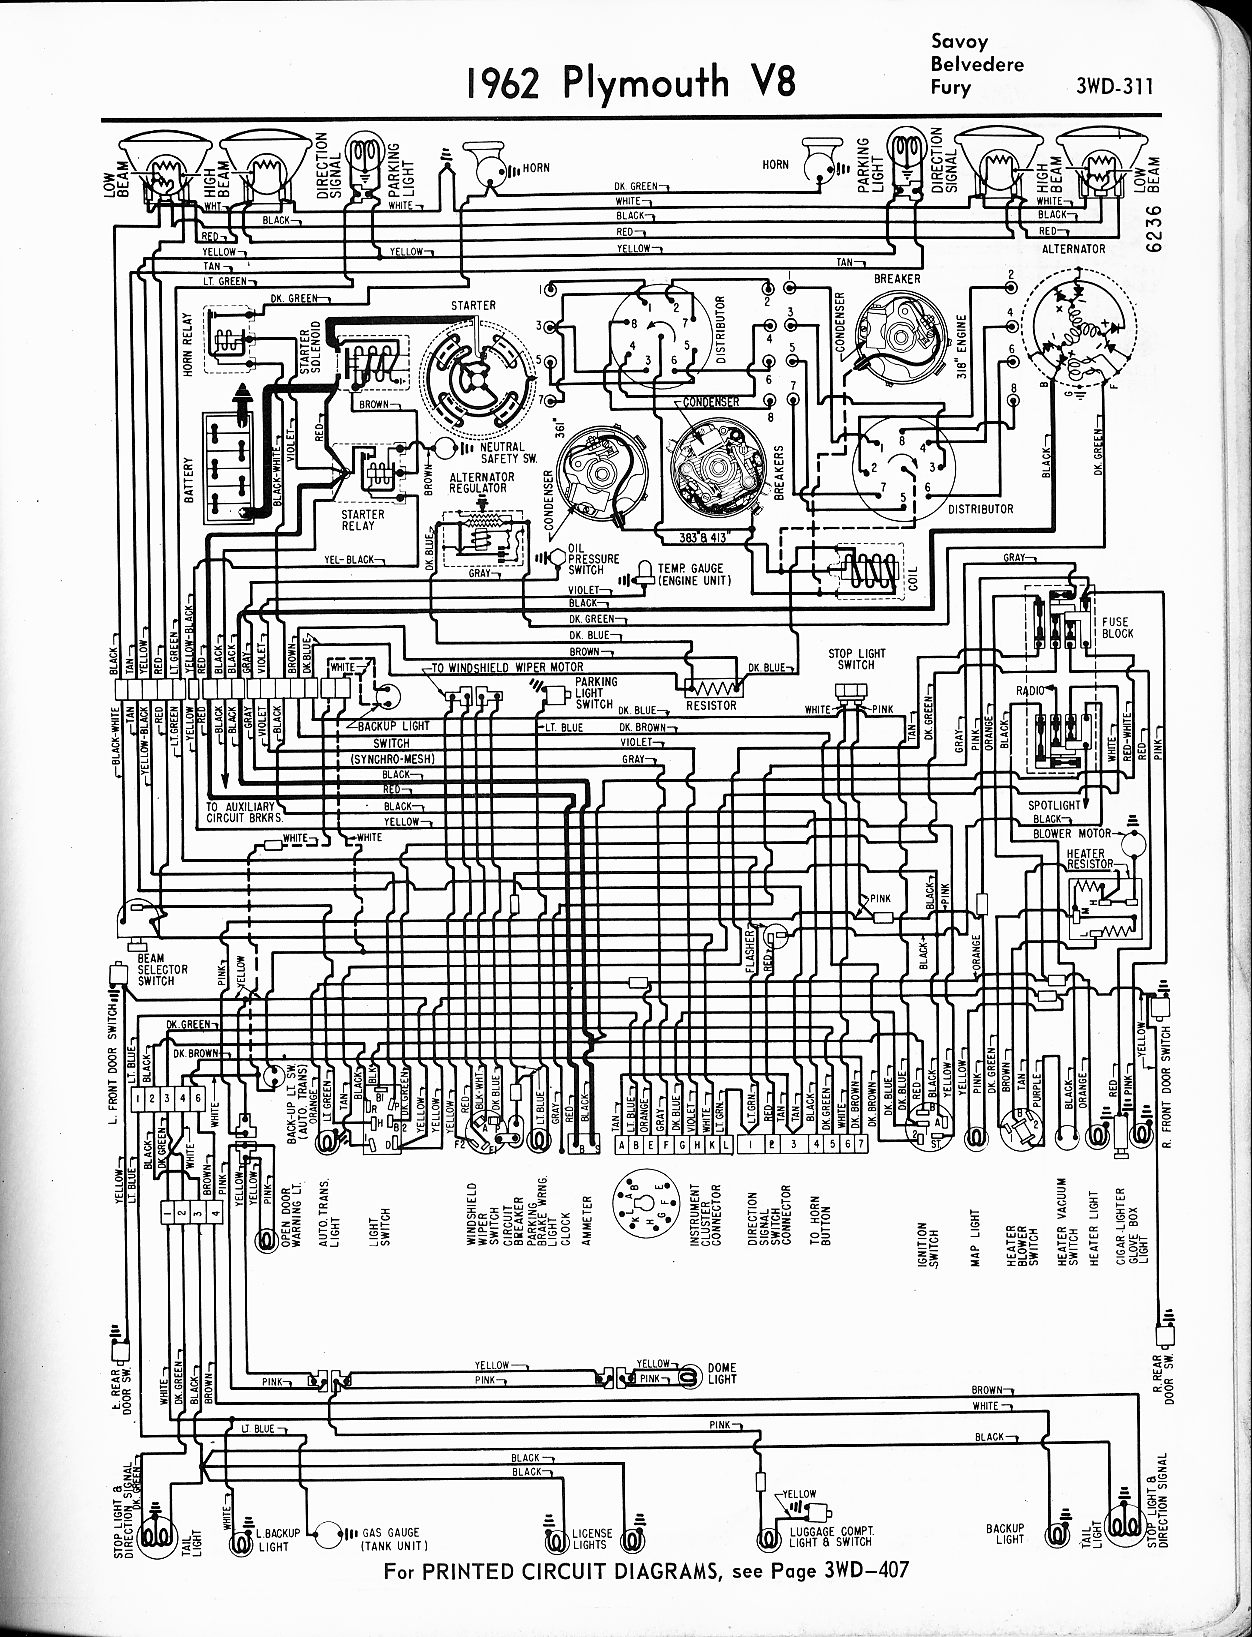 1964 plymouth valiant wiring diagram